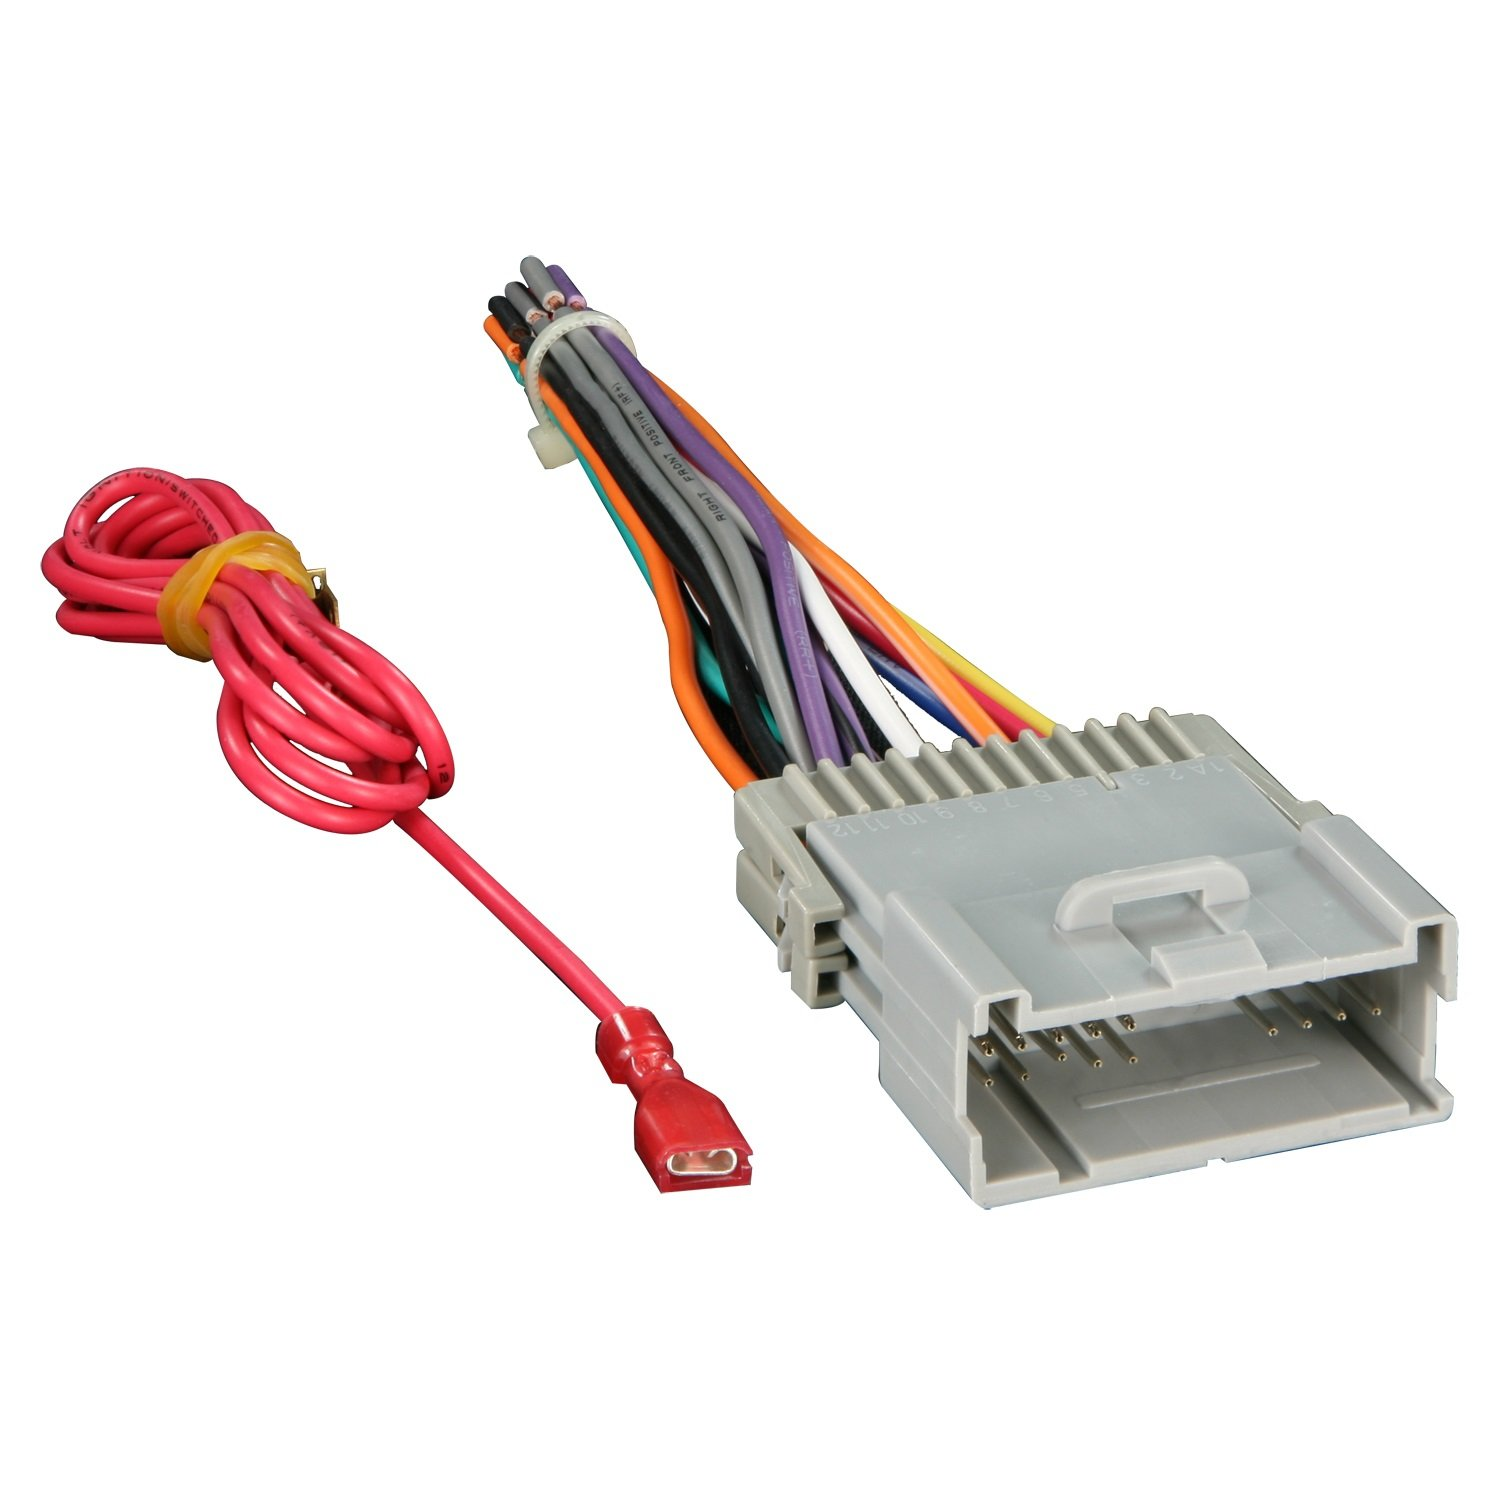 61eewxp9orL._SL1500_ amazon com metra 70 2003 radio wiring harness for gm 98 08 Wall Plug Wiring at bayanpartner.co